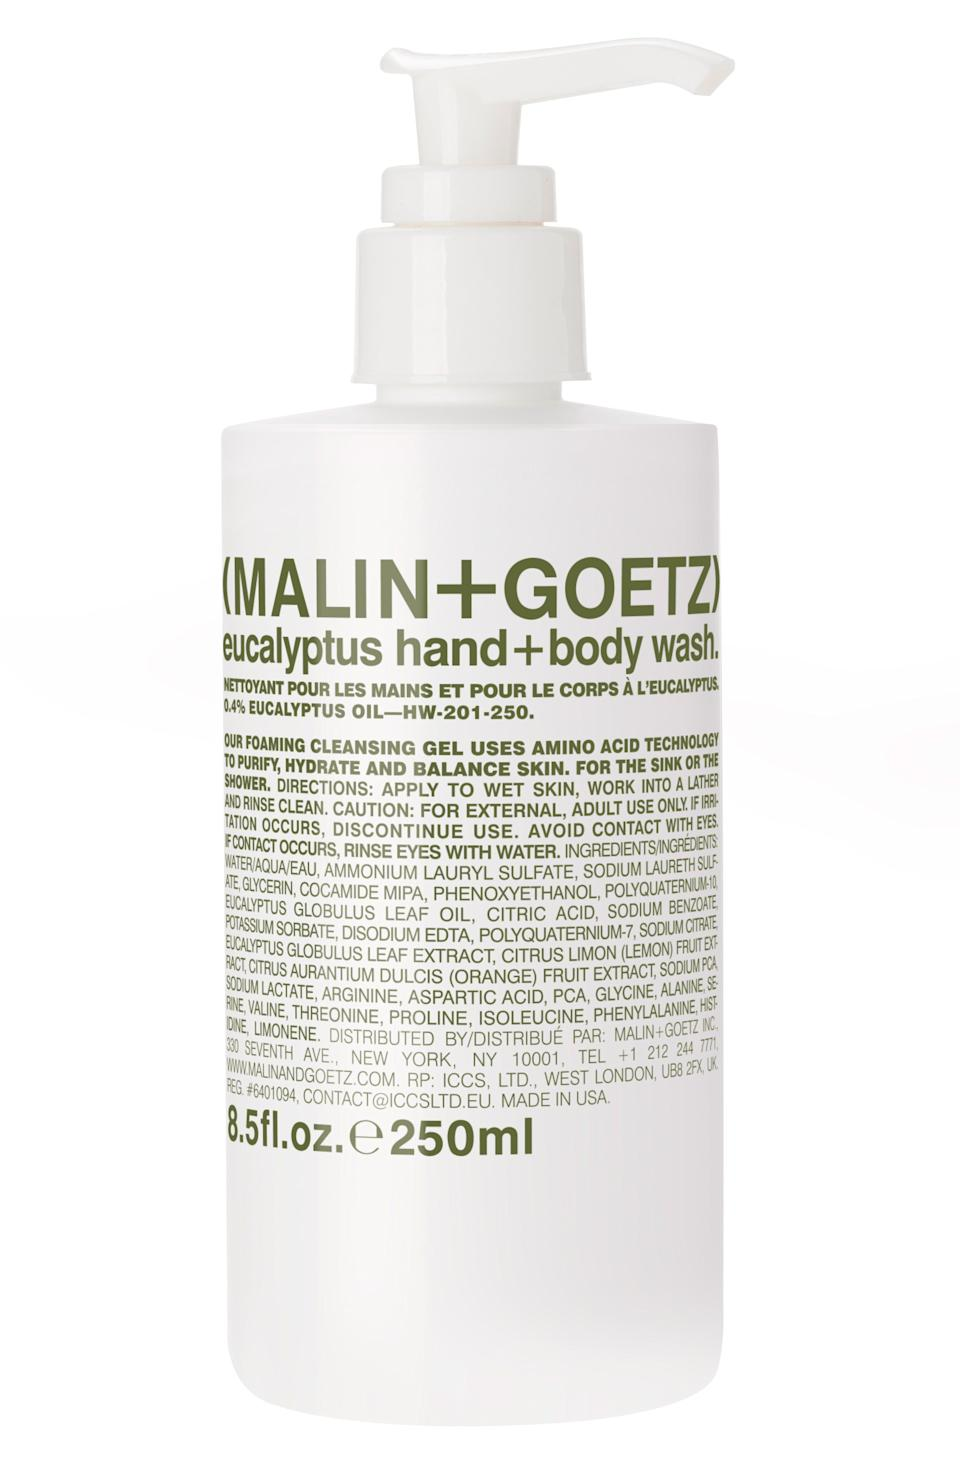 """<p><strong>MALIN+GOETZ</strong></p><p>nordstrom.com</p><p><strong>$24.00</strong></p><p><a href=""""https://go.redirectingat.com?id=74968X1596630&url=https%3A%2F%2Fshop.nordstrom.com%2Fs%2Fmalingoetz-eucalyptus-hand-body-wash%2F5464678&sref=https%3A%2F%2Fwww.harpersbazaar.com%2Fbeauty%2Fskin-care%2Fg33545040%2Fbest-hand-soap%2F"""" rel=""""nofollow noopener"""" target=""""_blank"""" data-ylk=""""slk:Shop Now"""" class=""""link rapid-noclick-resp"""">Shop Now</a></p><p>This decadent, lathering formula can be used on your hands or whole body. Either way, the formula gently cleanses and leaves behind the most refreshing eucalyptus scent. </p>"""